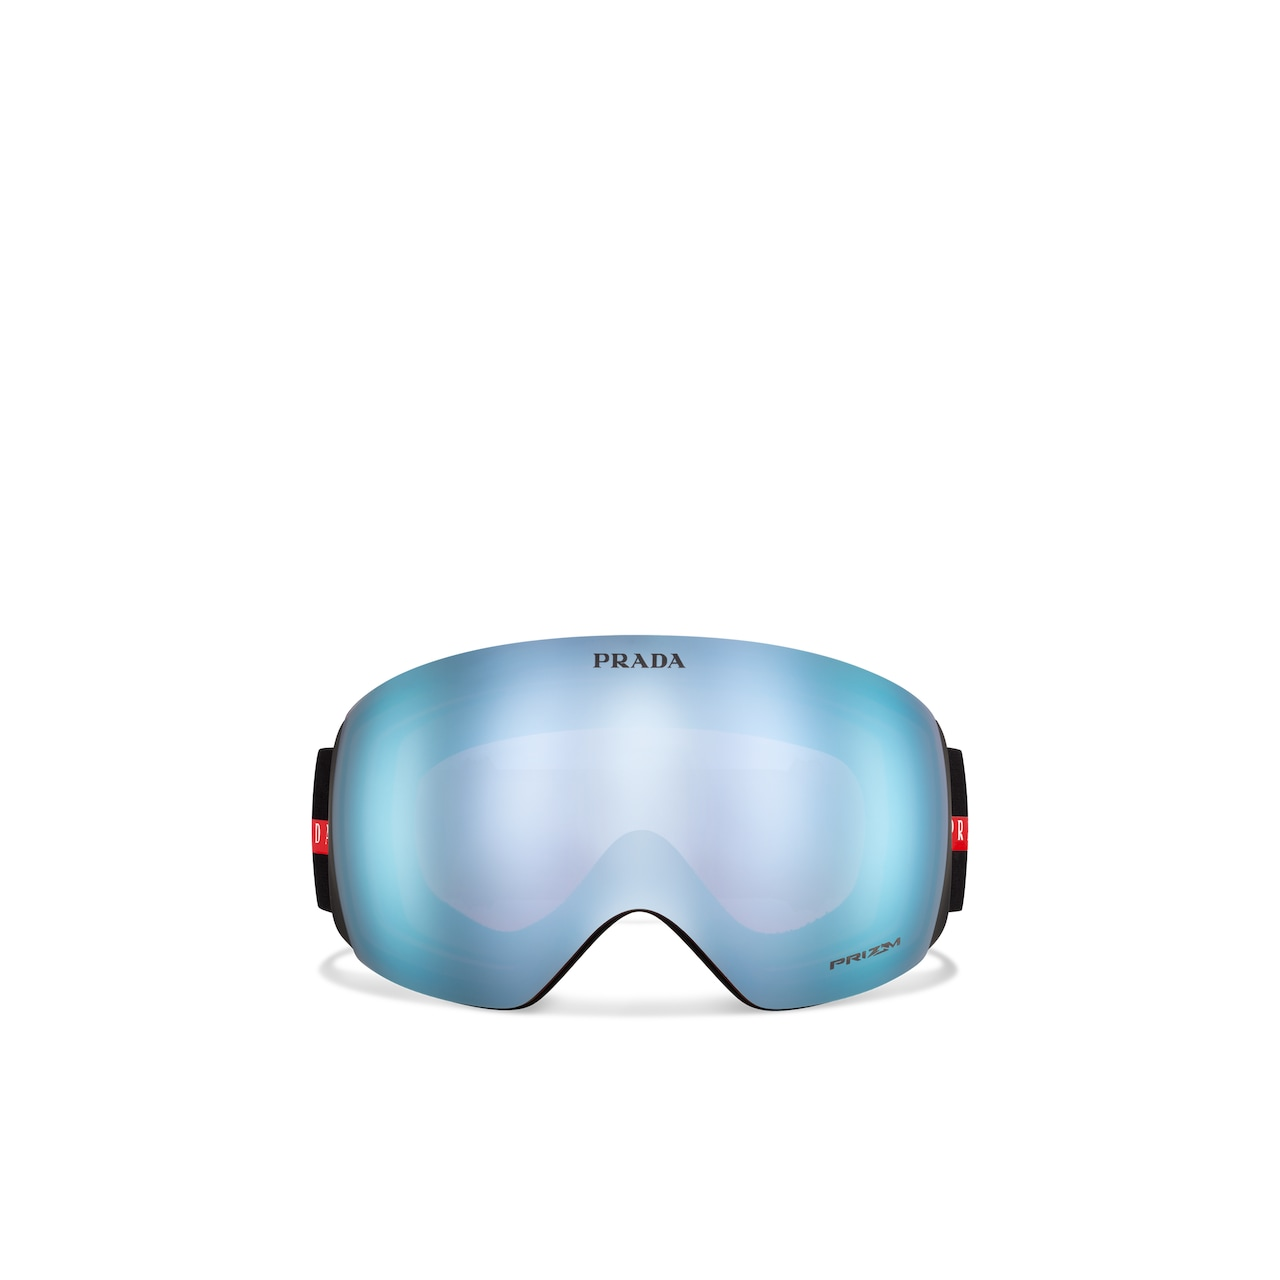 Prada Linea Rossa for Oakley snow goggle